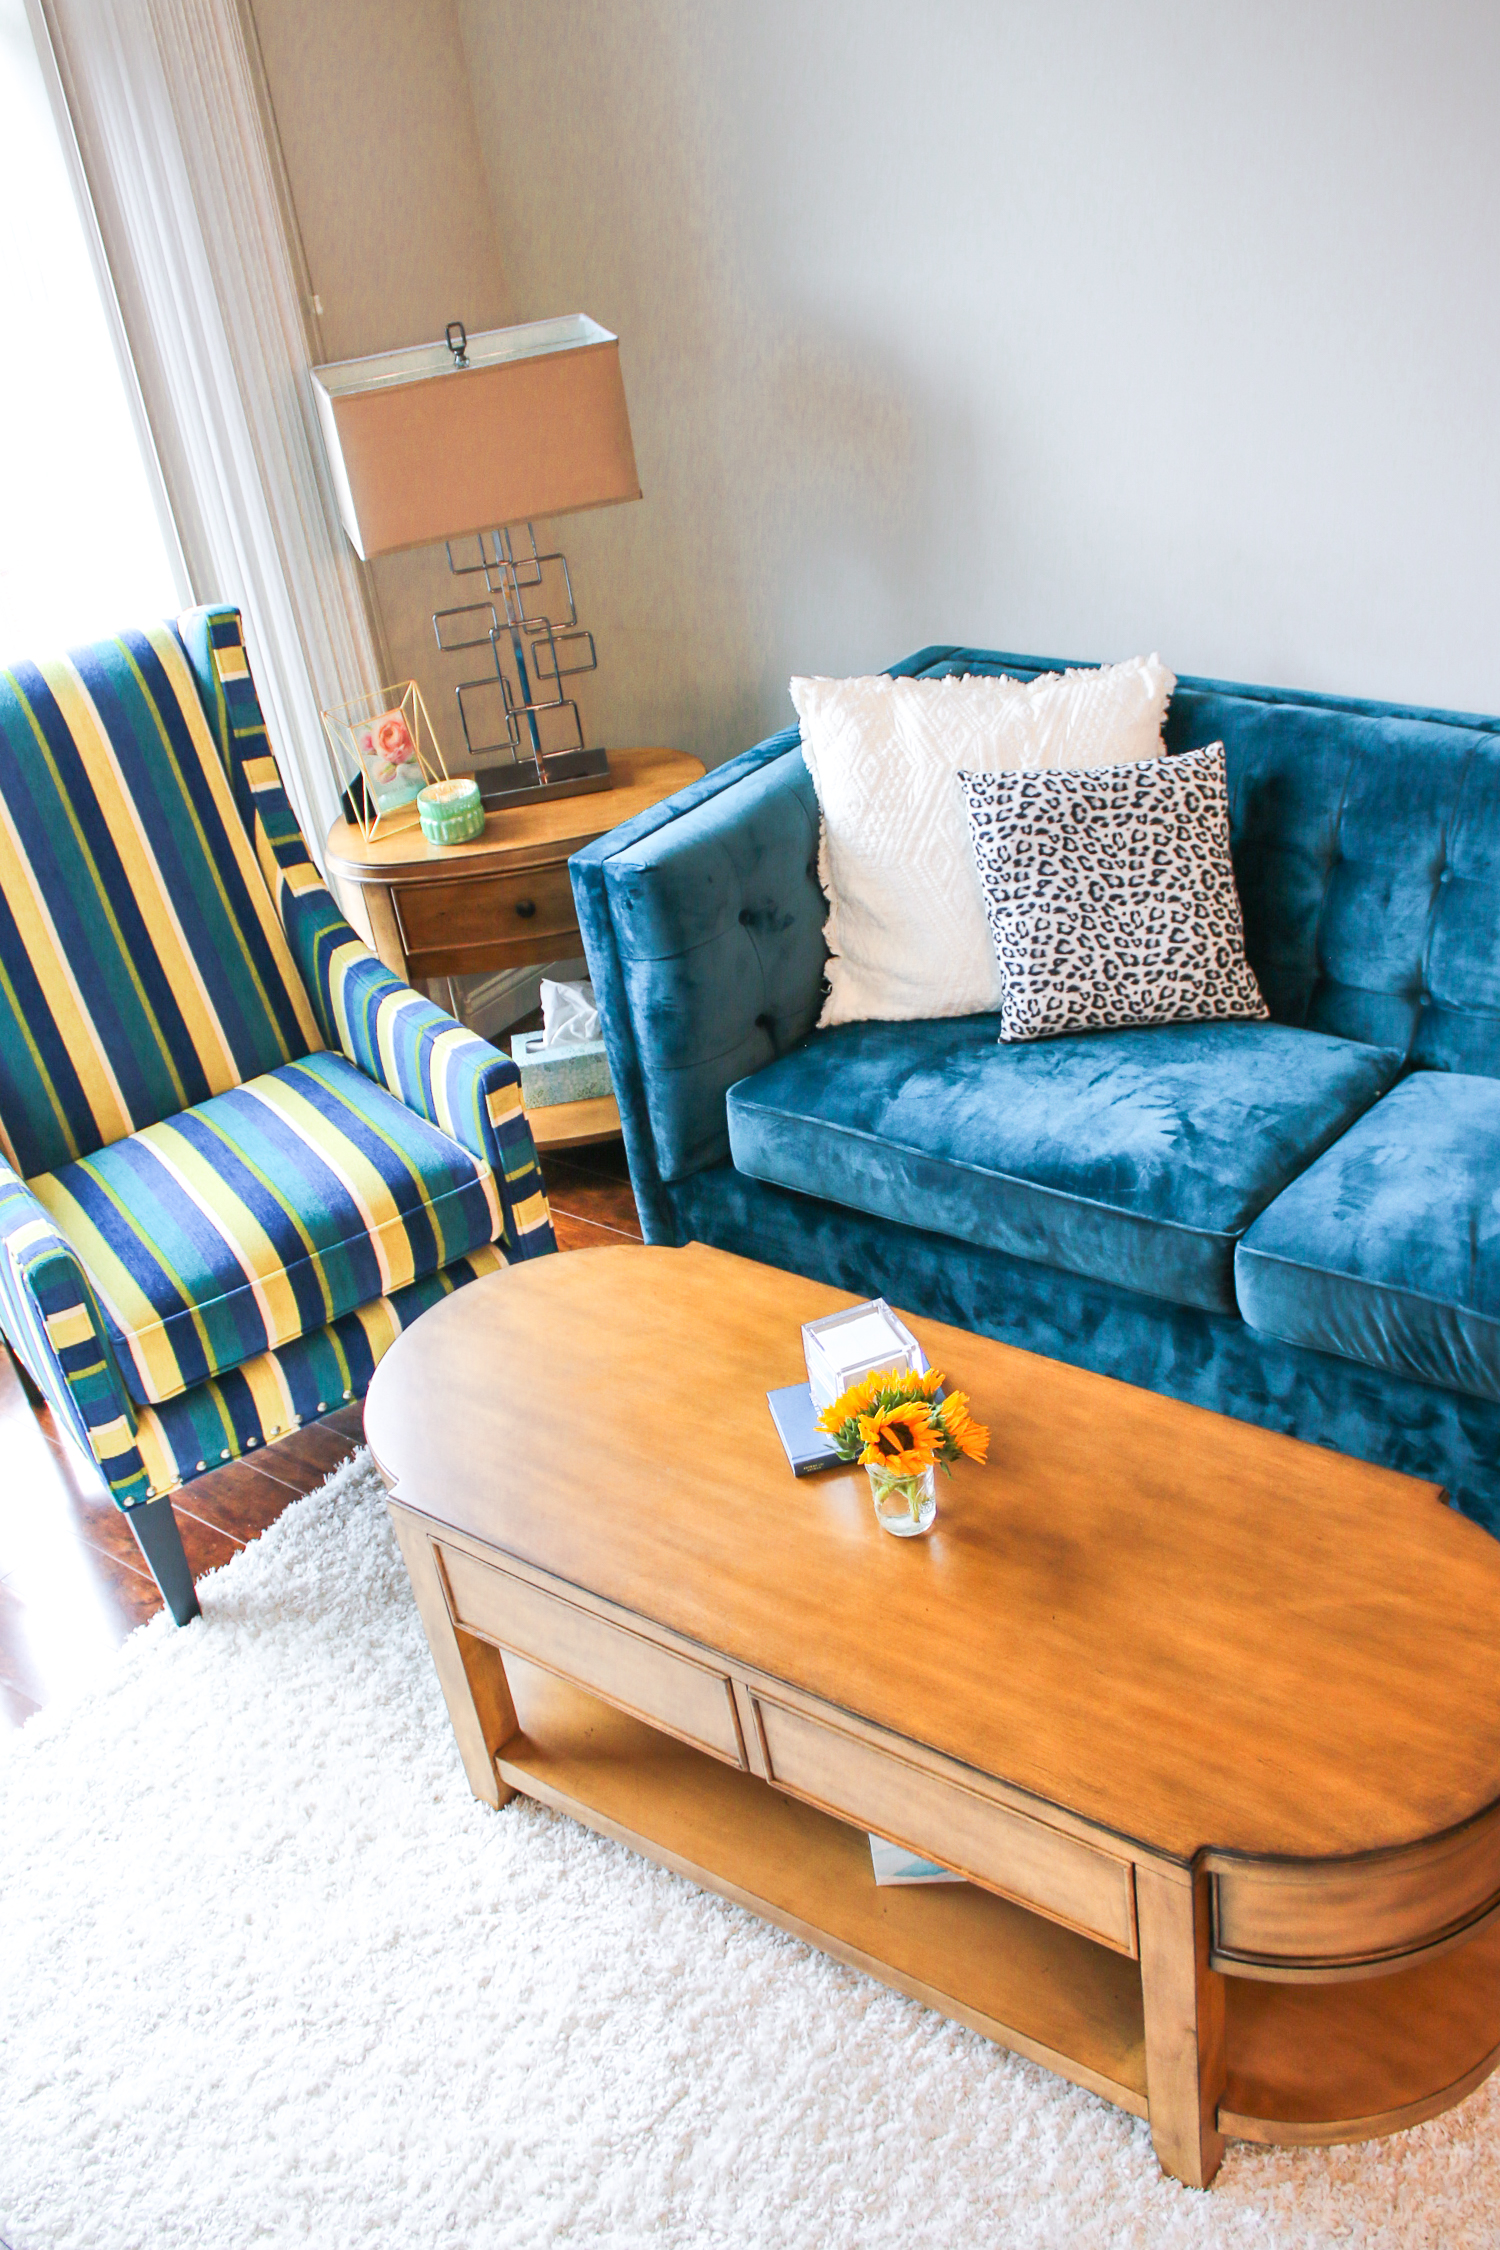 Columbia Apartment Tour: How to Decorate and Furnish a Temporary Apartment on a Budget by southern lifestyle blogger Stephanie Ziajka from Diary of a Debutante